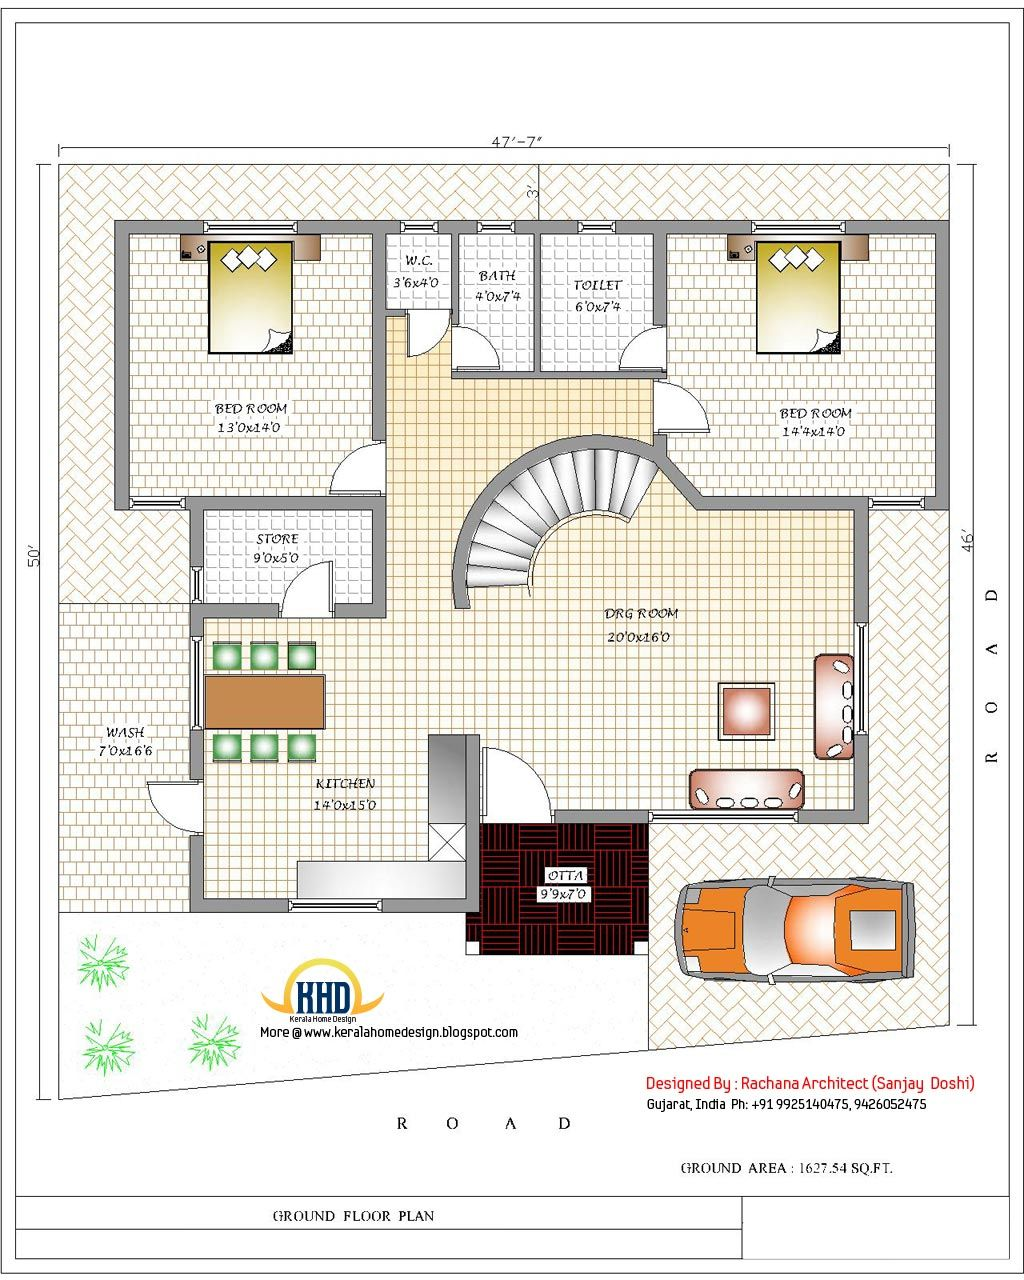 Tiny Houses Design Plans India House Plan Ground Floor Plan Home Design Plans For India